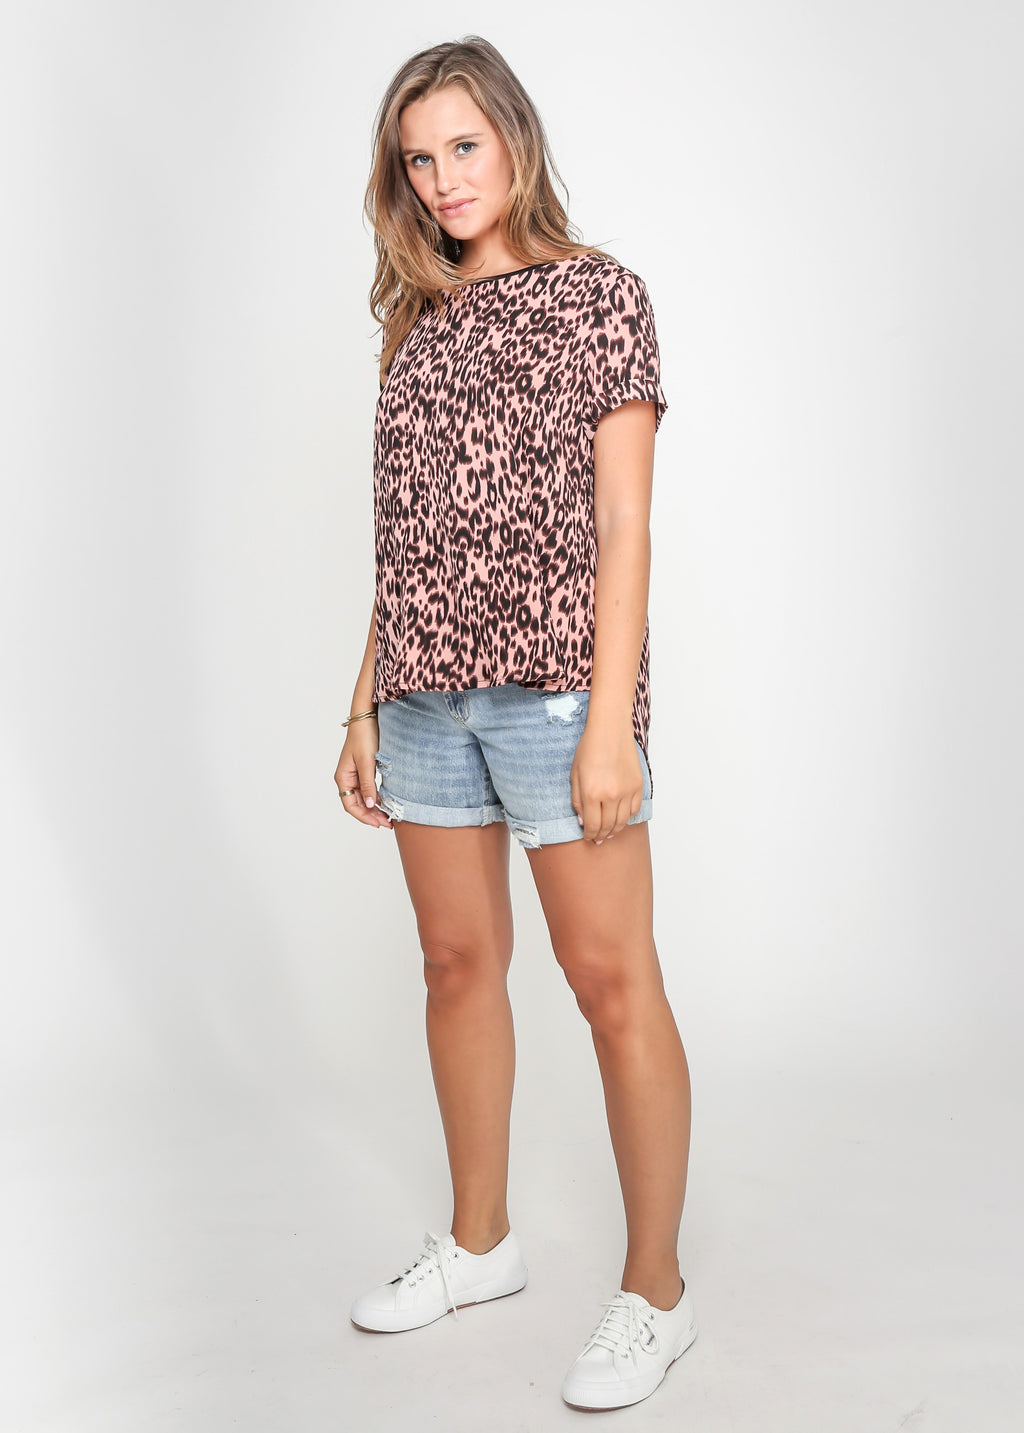 HARLOW TEE - PINK LEOPARD - MARK DOWN MADNESS